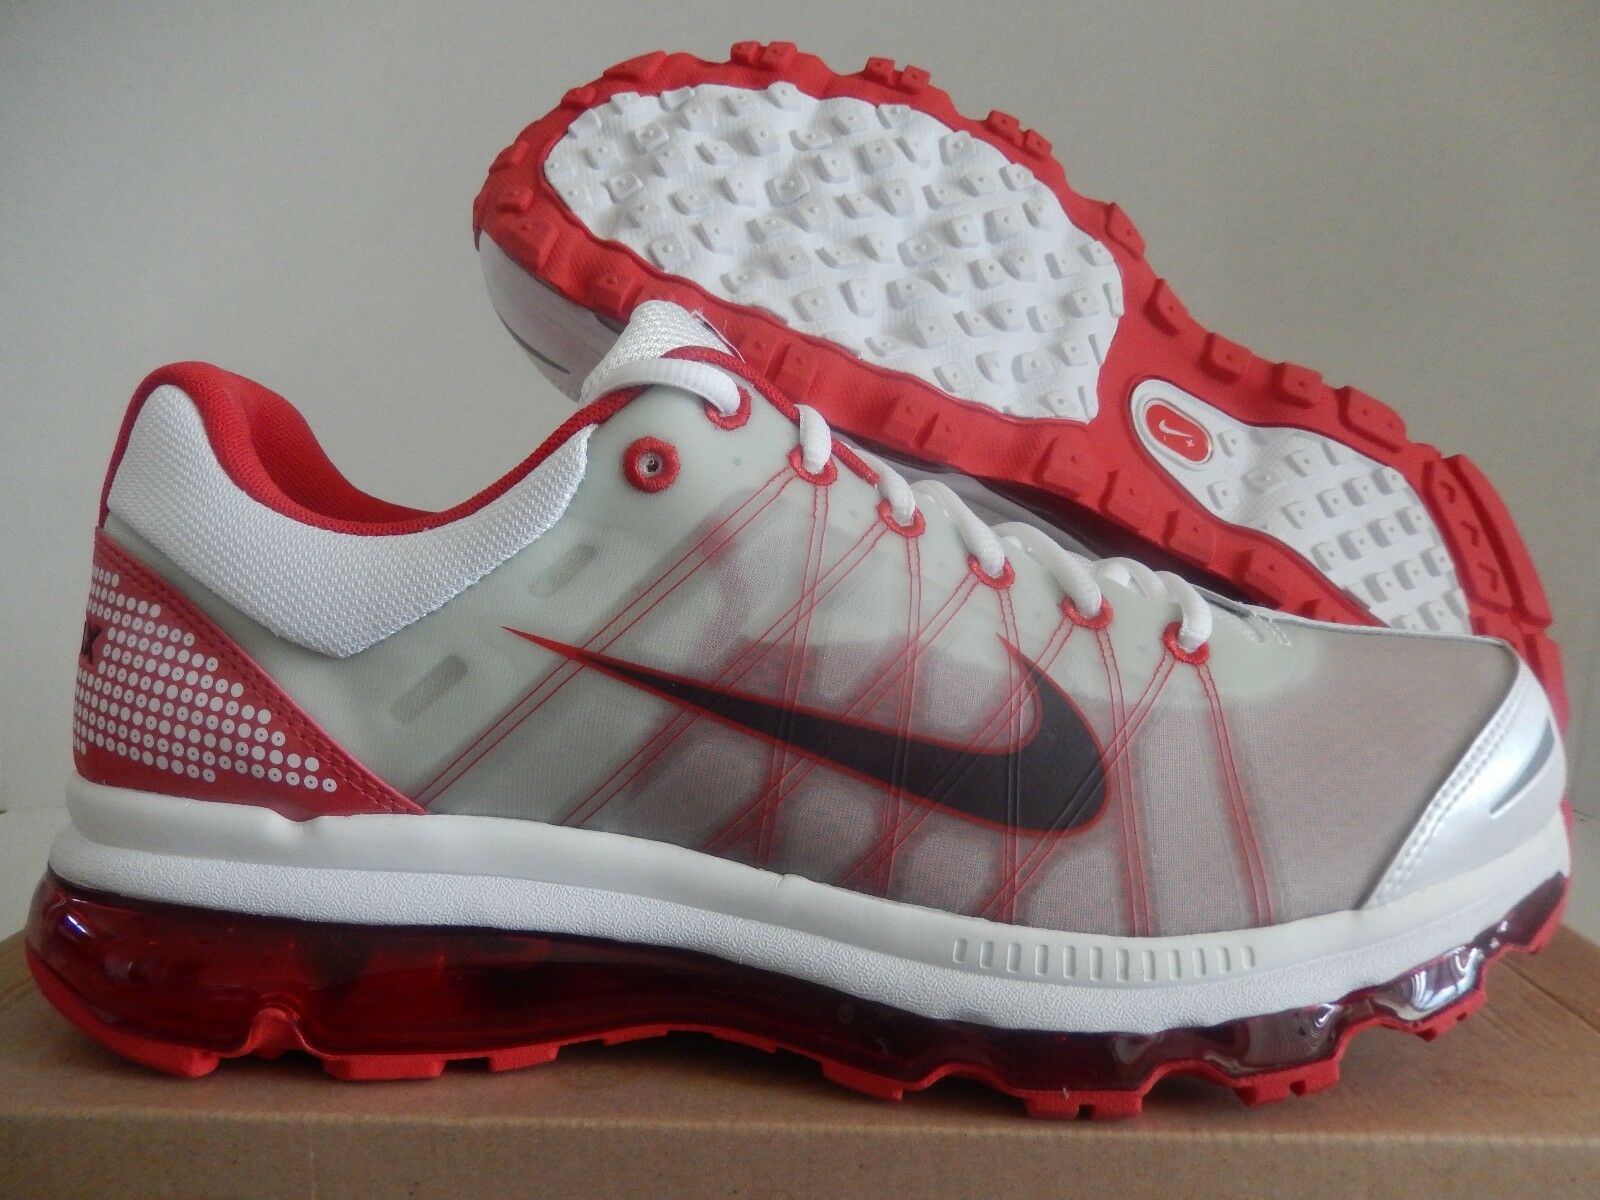 4a9f8ee43de574 NIKE AIR MAX + 2009 WHITE-RED MAHOGANY-SPORT RED SZ 13  486978-166 ...